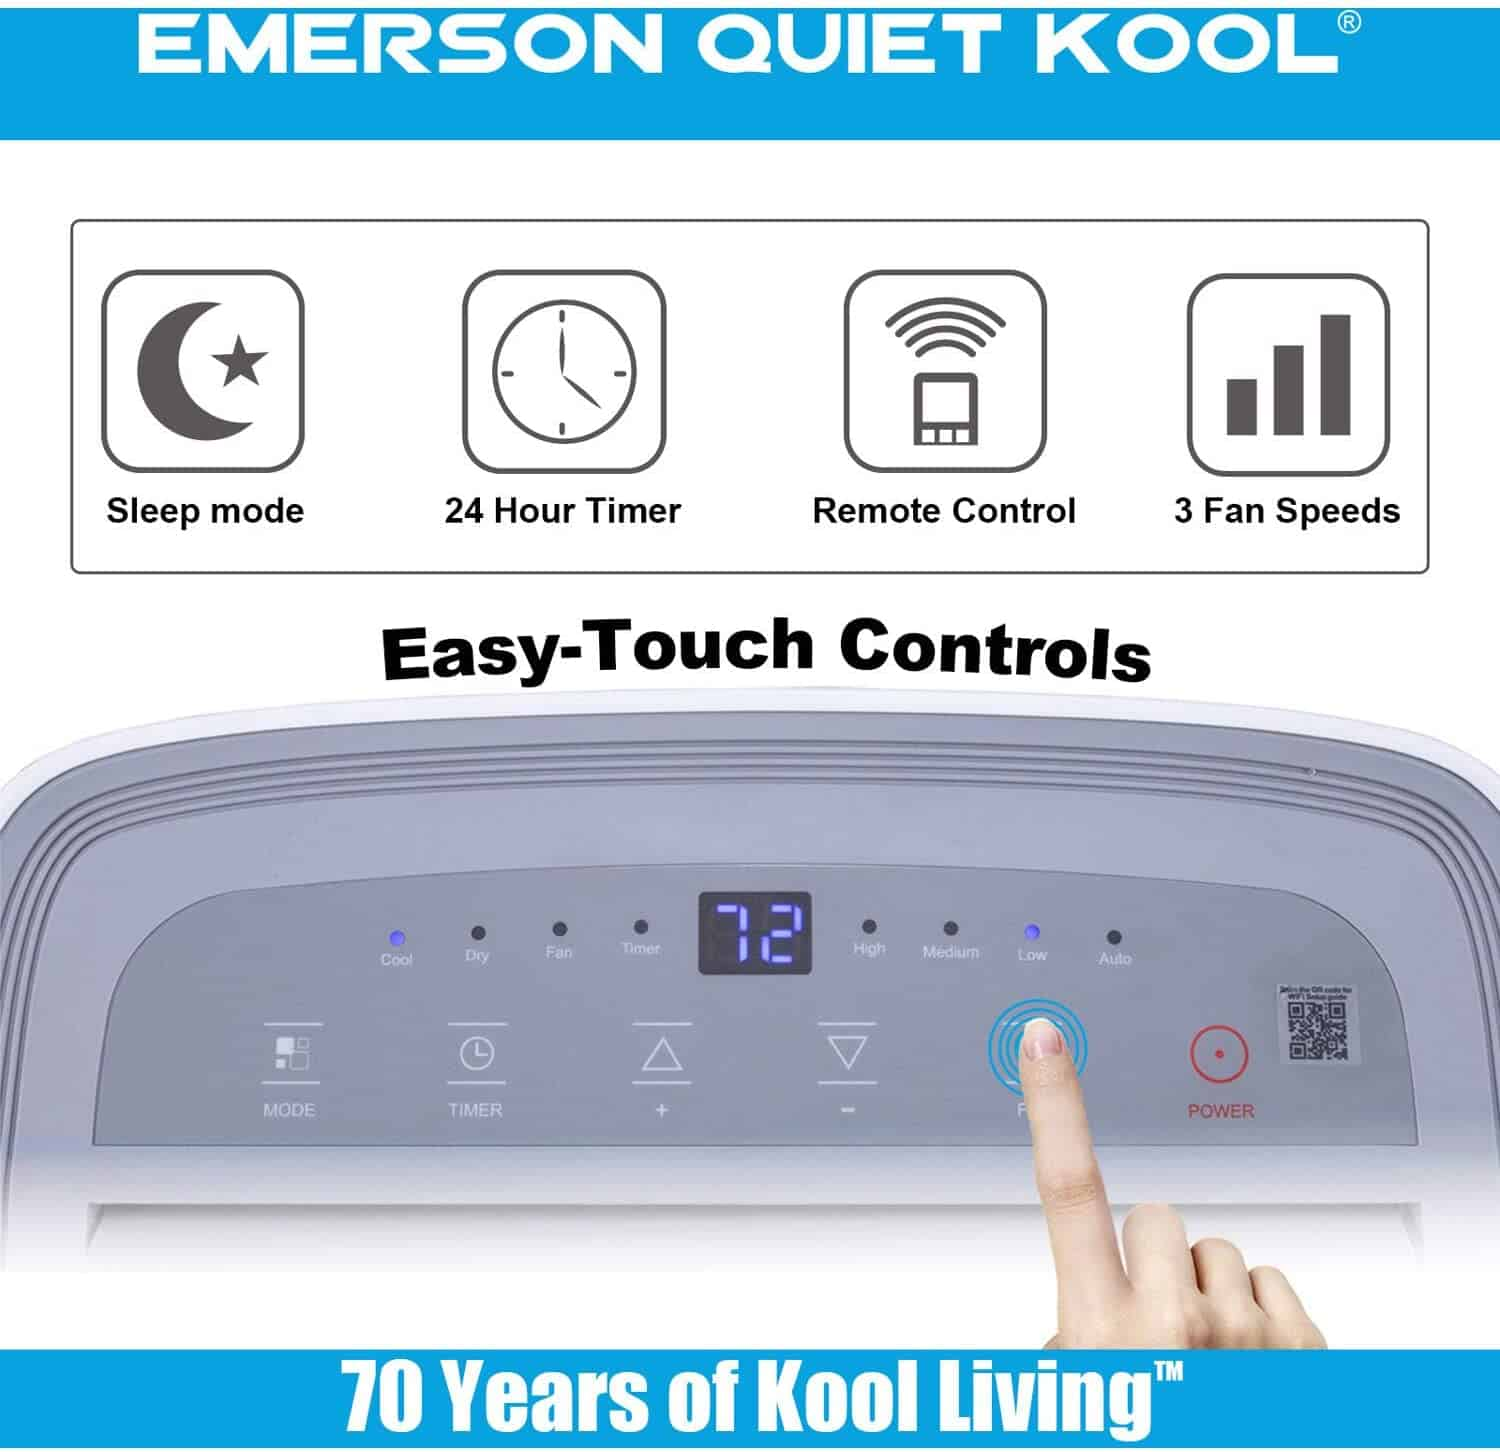 Emerson Quiet Kool EAPC8RD1 Portable Air Conditioner Review